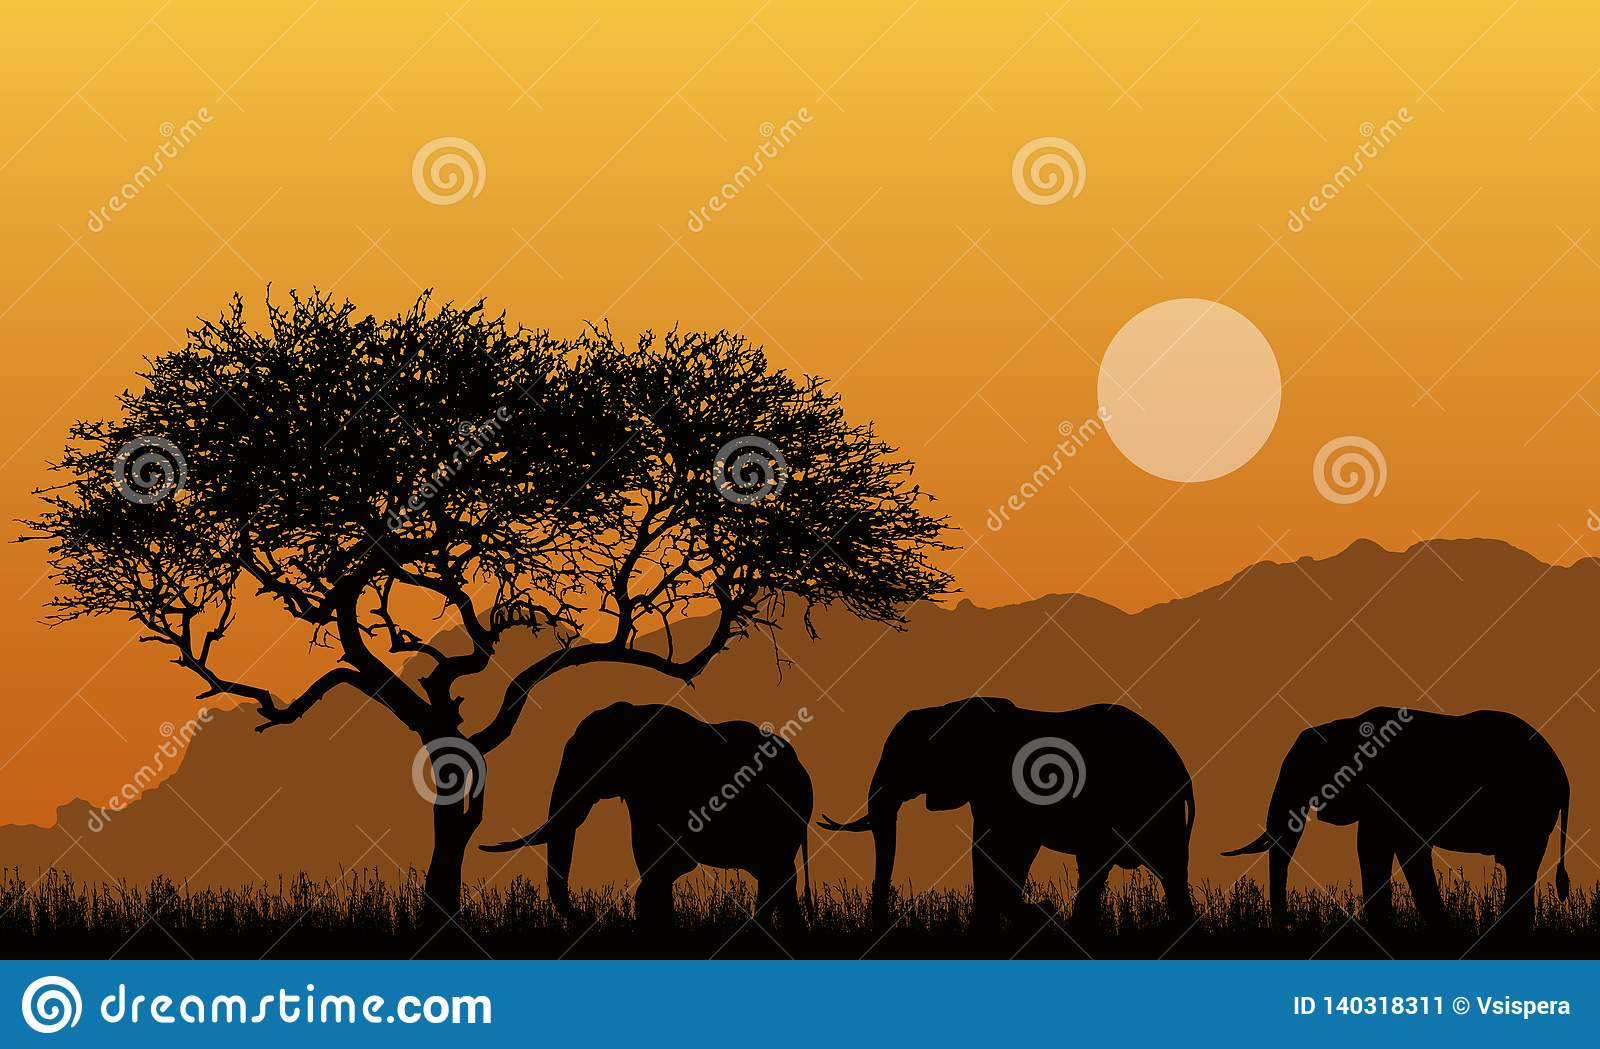 Illustration of silhouettes of mountain landscape of african safari with tree, grass and three elephants. Below the orange sky